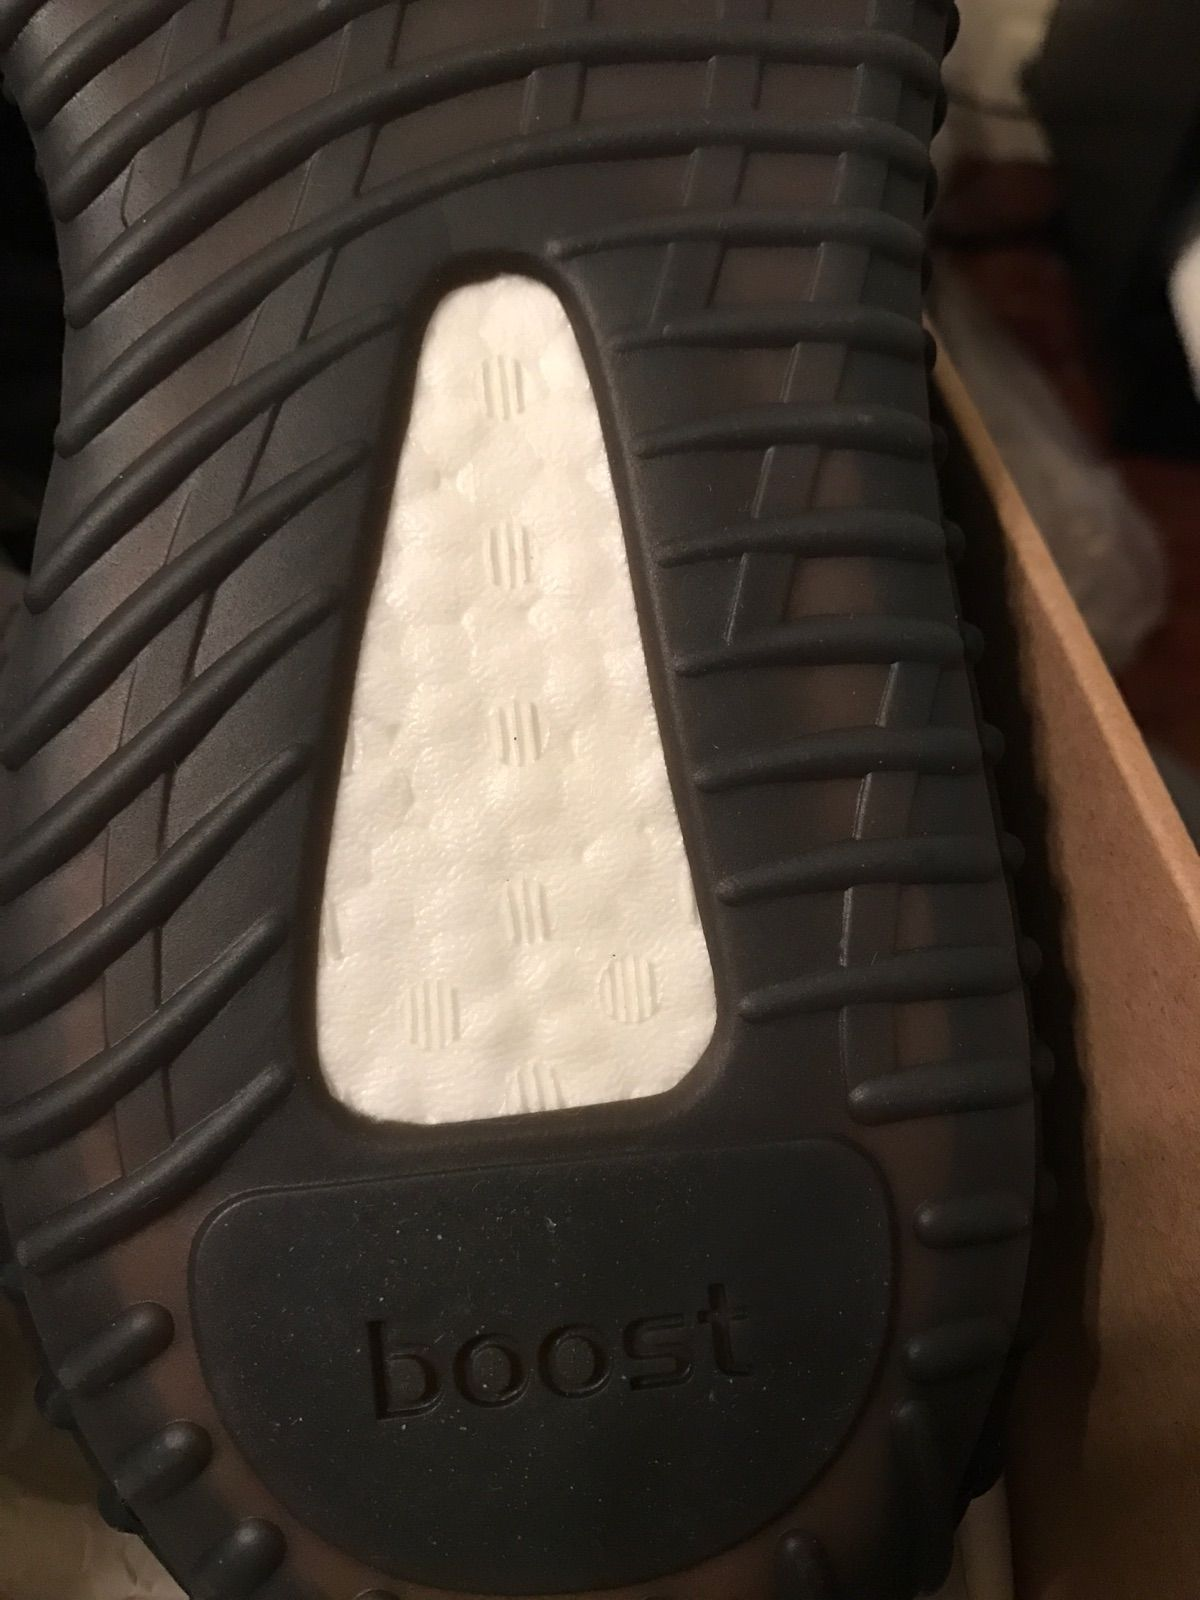 yeezy boost 350 v2 black and white legit check adidas original yeezy boost 350 v2